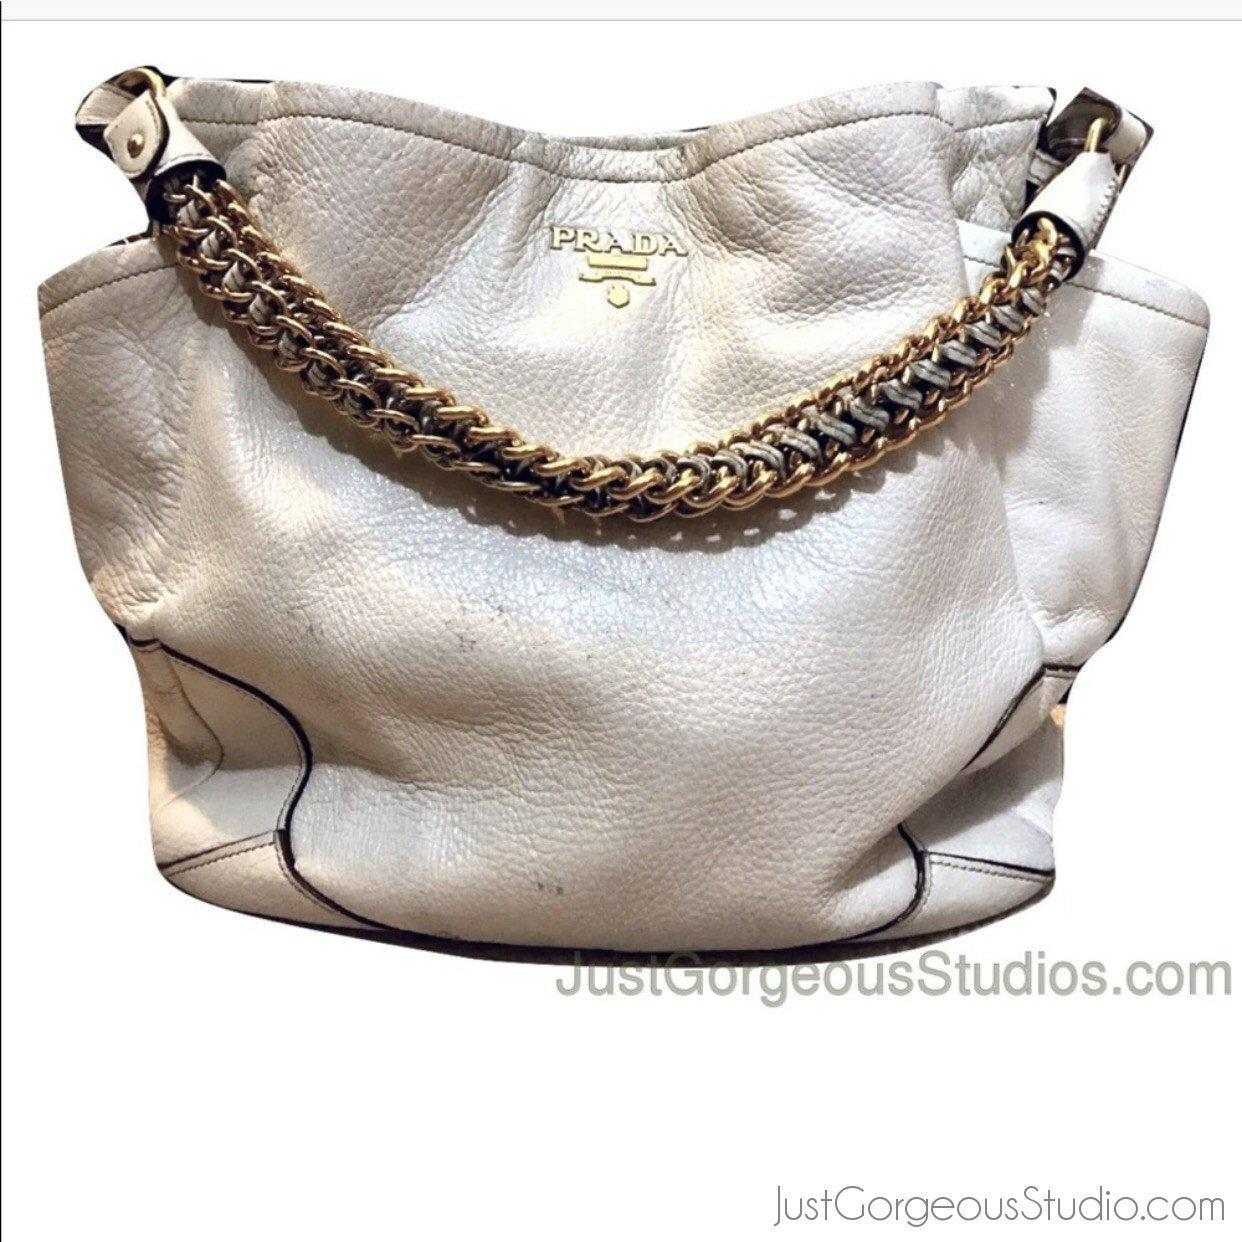 10c0fd24cc8ff8 Authenticity Guaranteed - PRADA Talco Cervo Lux Leather Chain Bag – Authentic  Bags Only